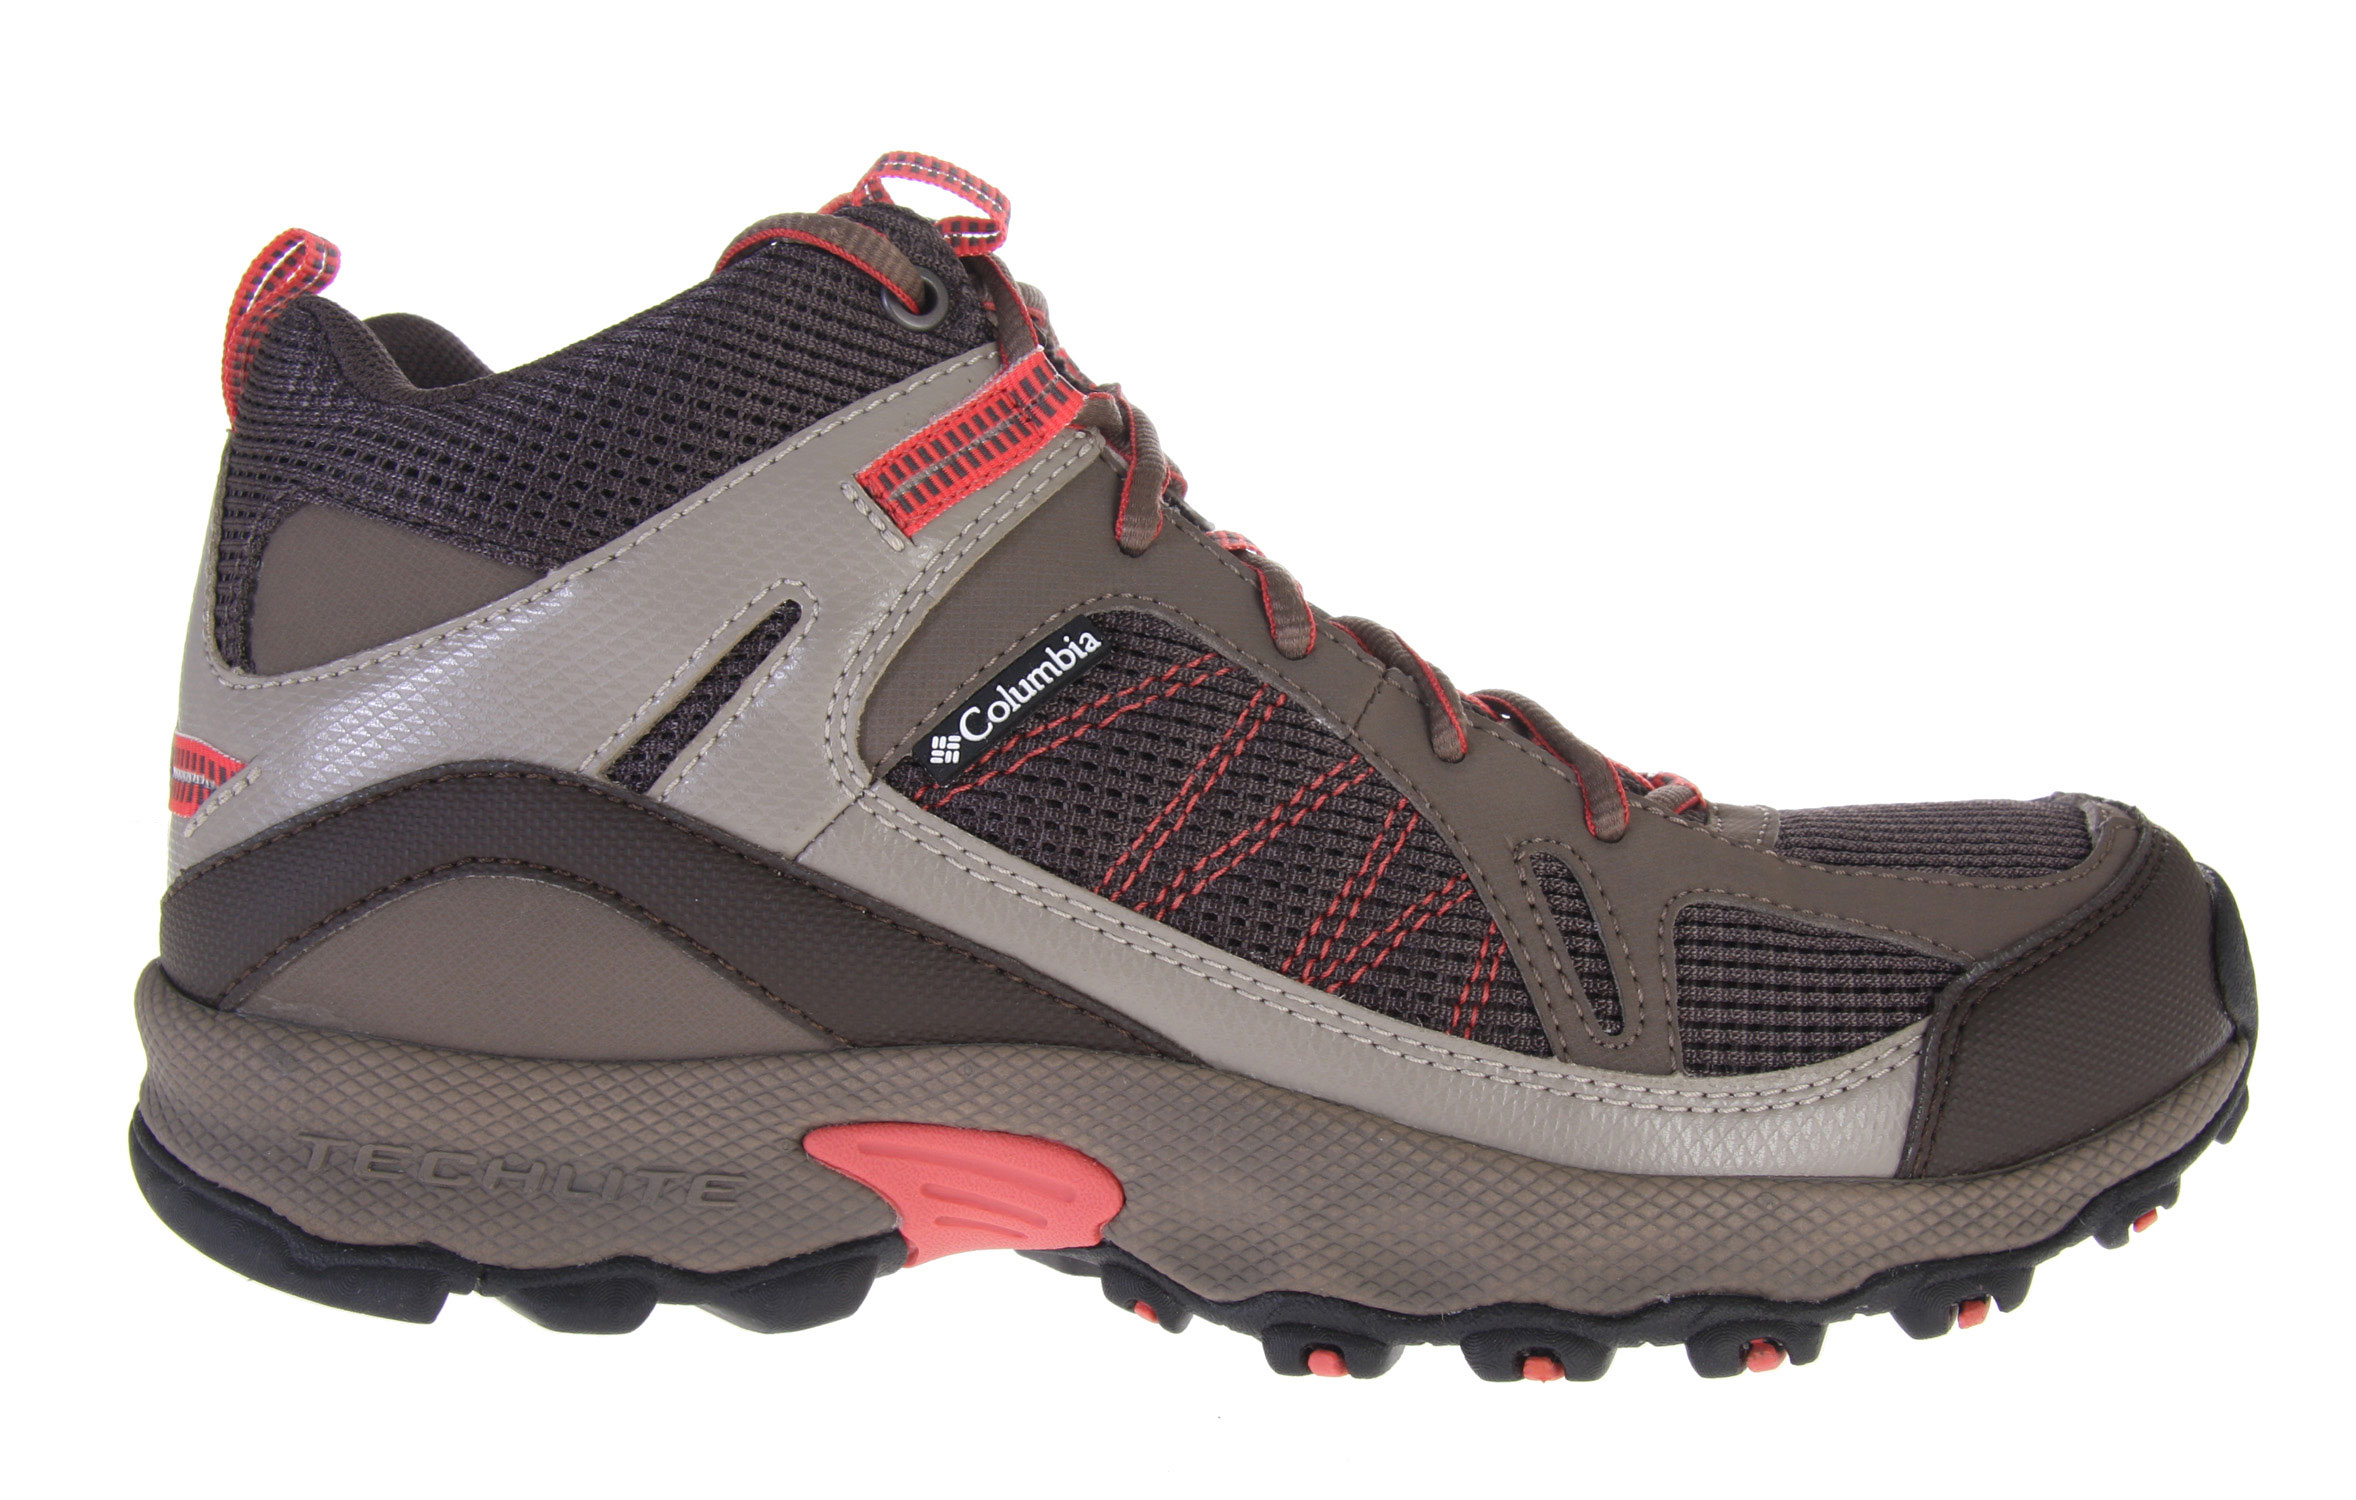 Camp and Hike Slip into the Switchback for low-profile support that looks as good on the street as it does on the singletrack. The mid version of this popular shoe covers the ankle for increased support and protection while maintaining a minimalist look and feel. Our revolutionary new Techlite heel moves dense stabilizing elements to the outside (putting softer material directly against your foot) to provide a cushioned and conforming fit to alleviate pain and irritation where trail runners told us they felt it most. Omni-Grip traction on the rubber sole grips rocks, dirt, mud and just about anything else you encounter on off-road adventures. Breathable mesh and a soft material in the flex zones mean superior comfort with great agility and ease of movement. The gusseted tongue keeps out rocks, sticks, and dirt while light, sinewy overlays offer additional protection without adding unnecessary bulk. Key Features of the Columbia Switchback Mid Hiking Shoes: Open breathable mesh tongue and vamp. Gusseted tongue to keep out unwanted debris. Light and sinewy synthetic overlays for support and protection Contour Comfort 1D footbed with AgION anti-odor treatment Removable contoured, single-density EVA footbed, which provides cushioning, comfort and support Low profile Techlite midsole for nimble, flexible feel in a lightweight package Non-marking Omni-Grip rubber compound with a rugged trail design Weight: Size 9, 1/2 pair = 13.9oz/395g - $70.95